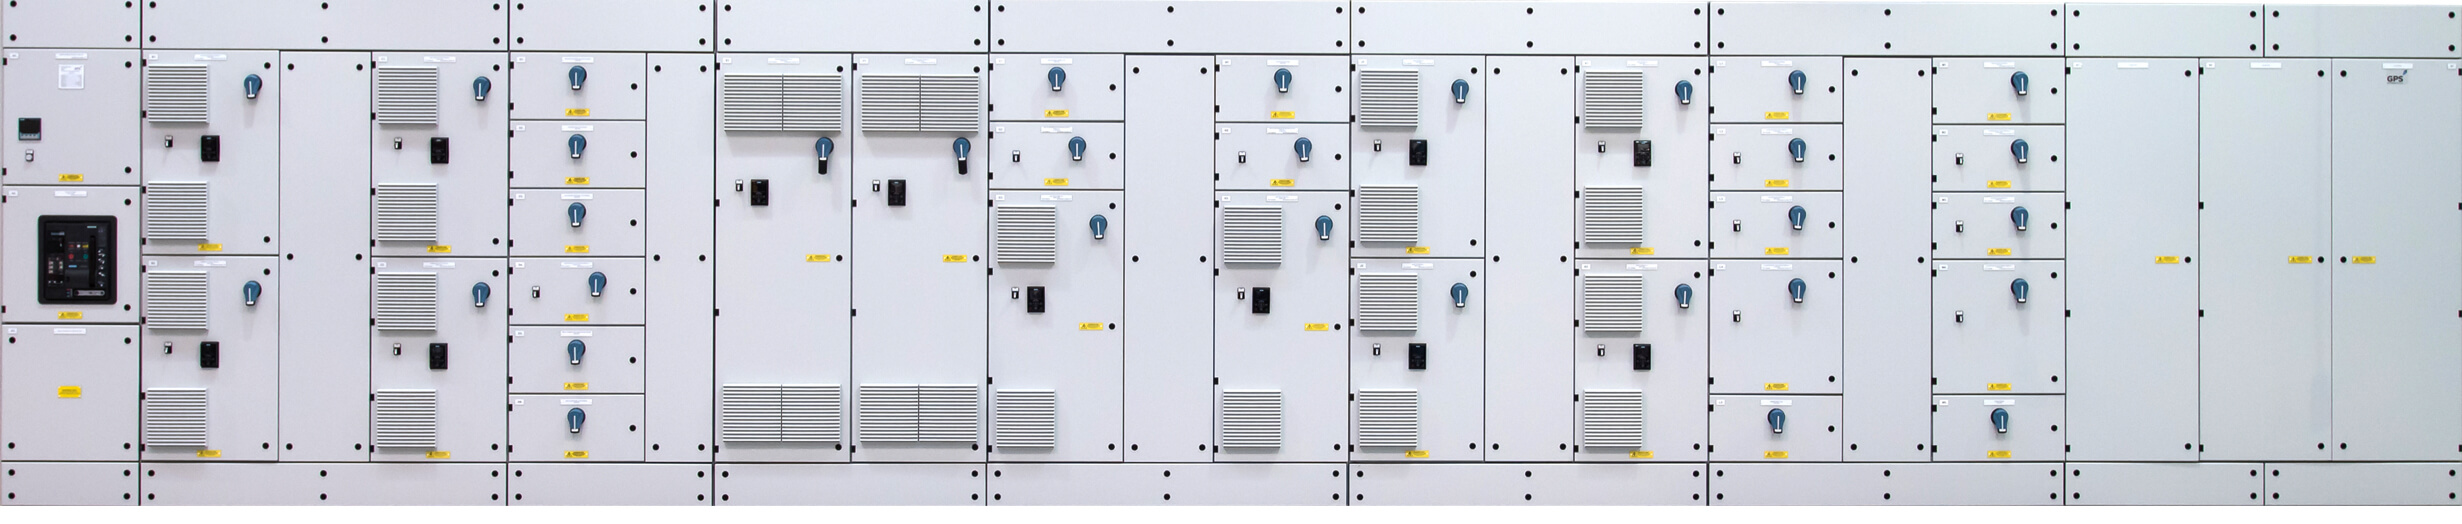 Motor Control Centre Mcc Manufacturer Systems Gps Group